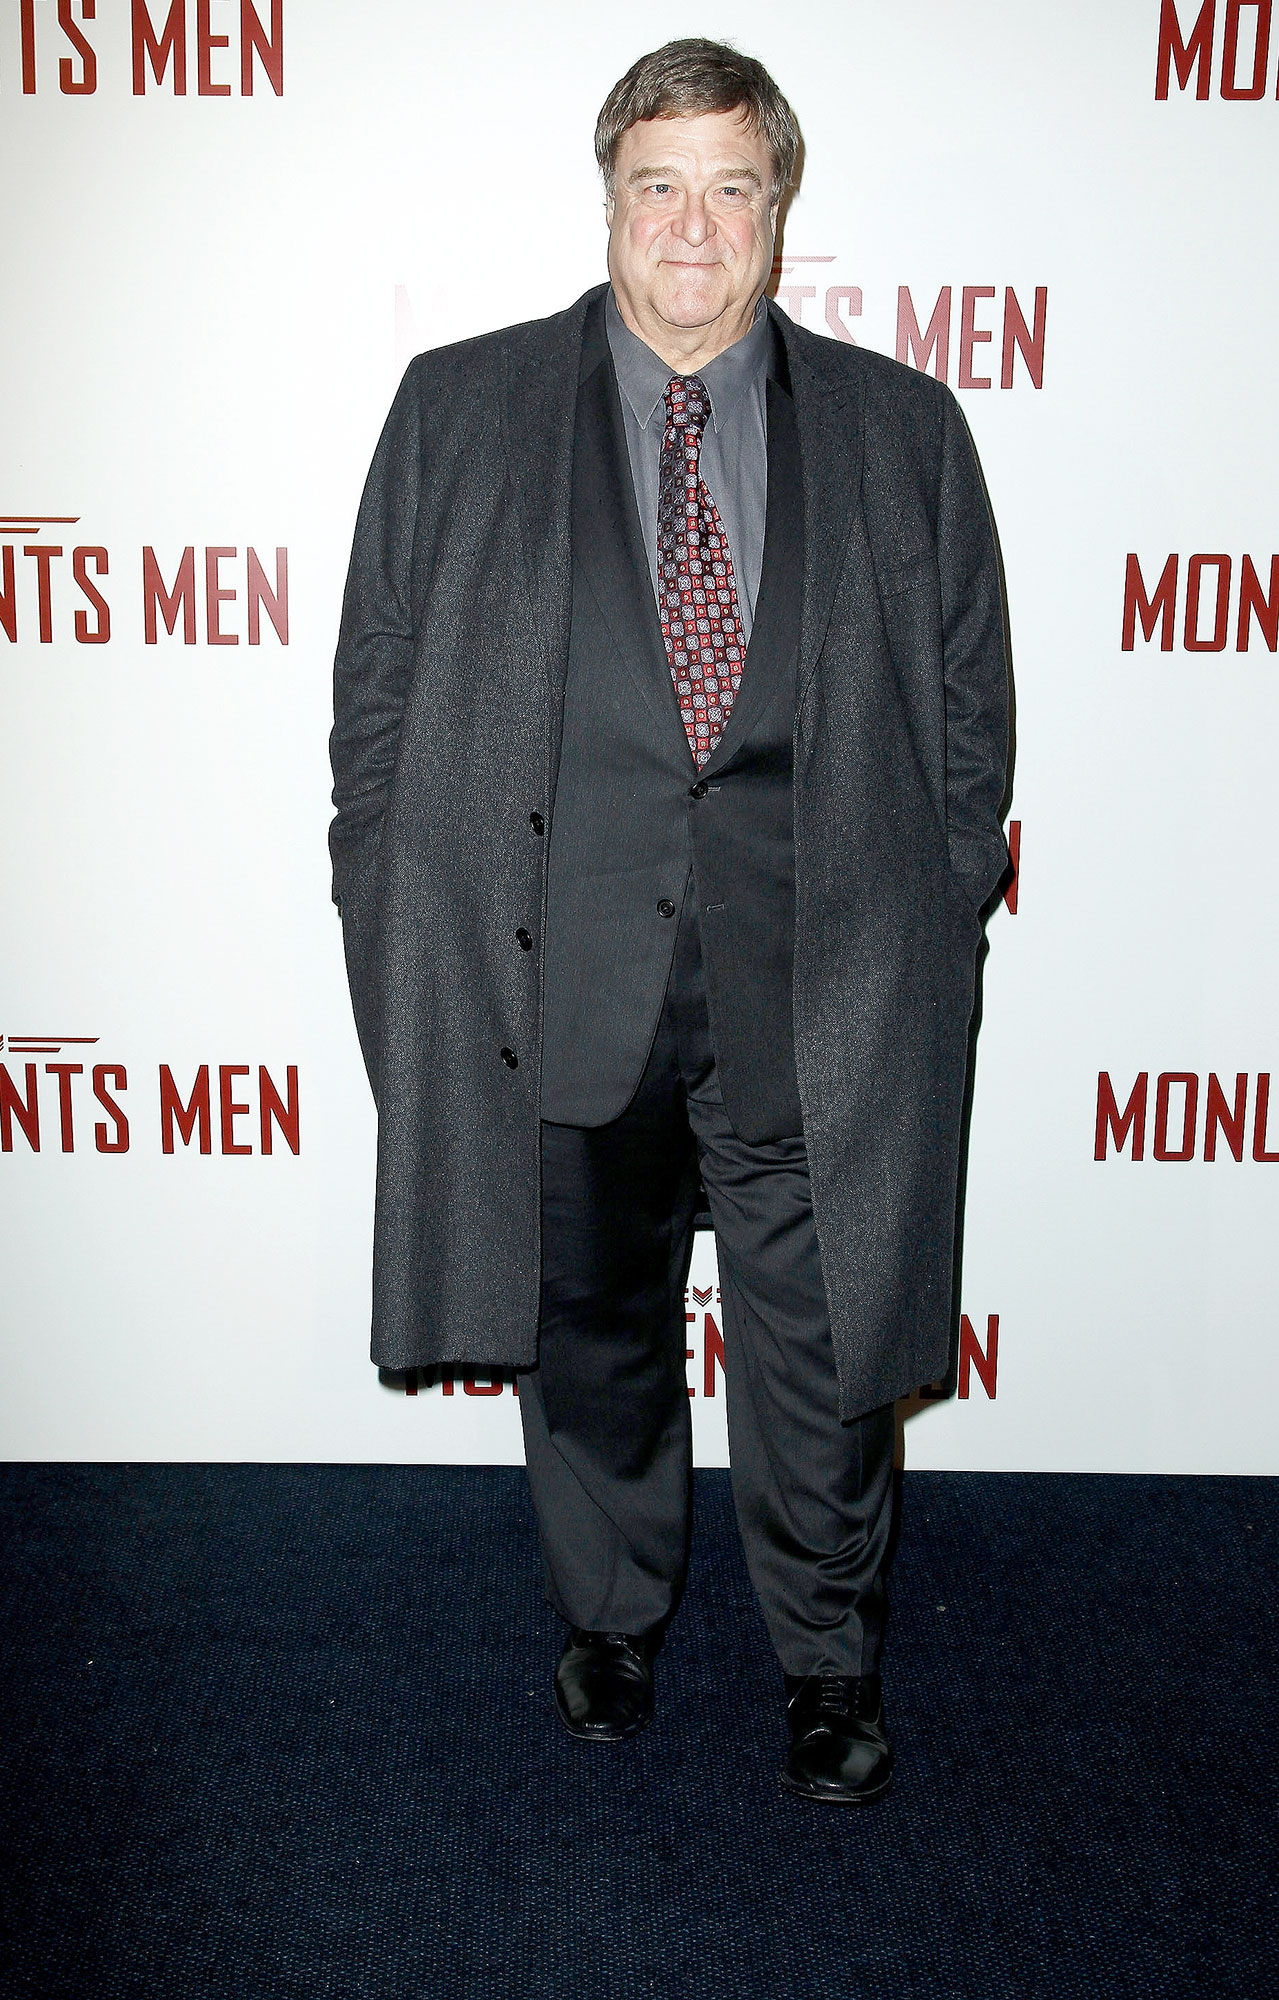 John Goodman attends 'Monuments Men' Paris premiere at Cinema UGC Normandie on February 12, 2014 in Paris, France. (